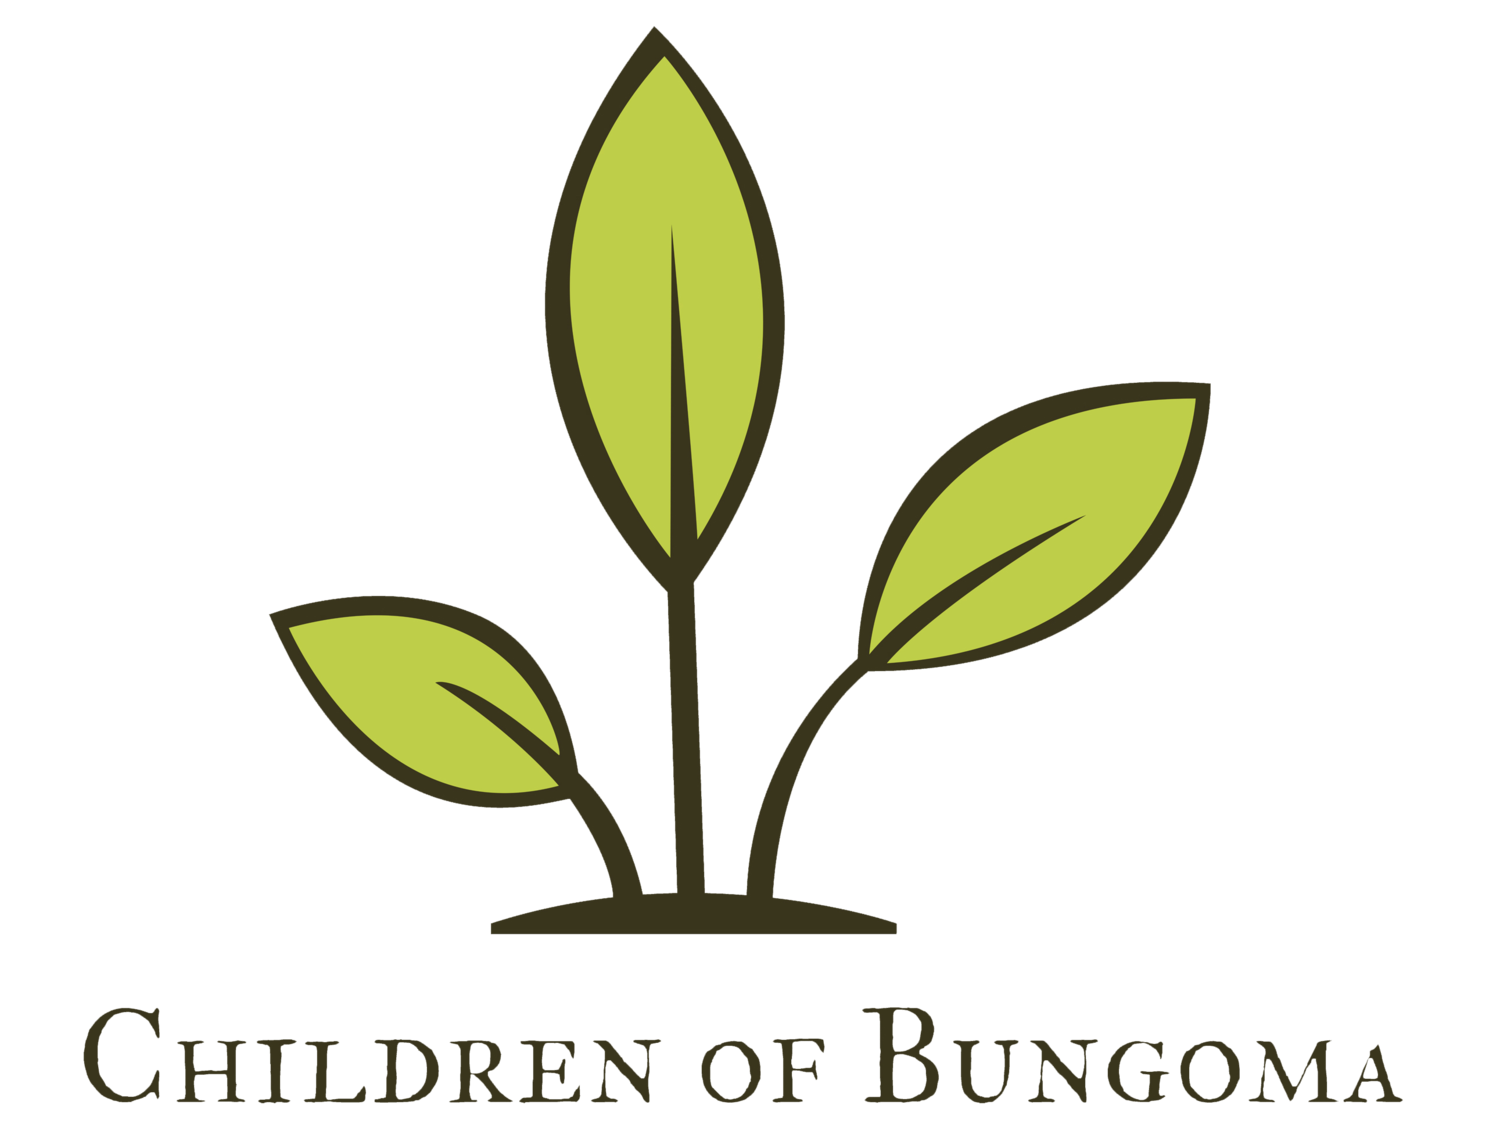 Children of Bungoma